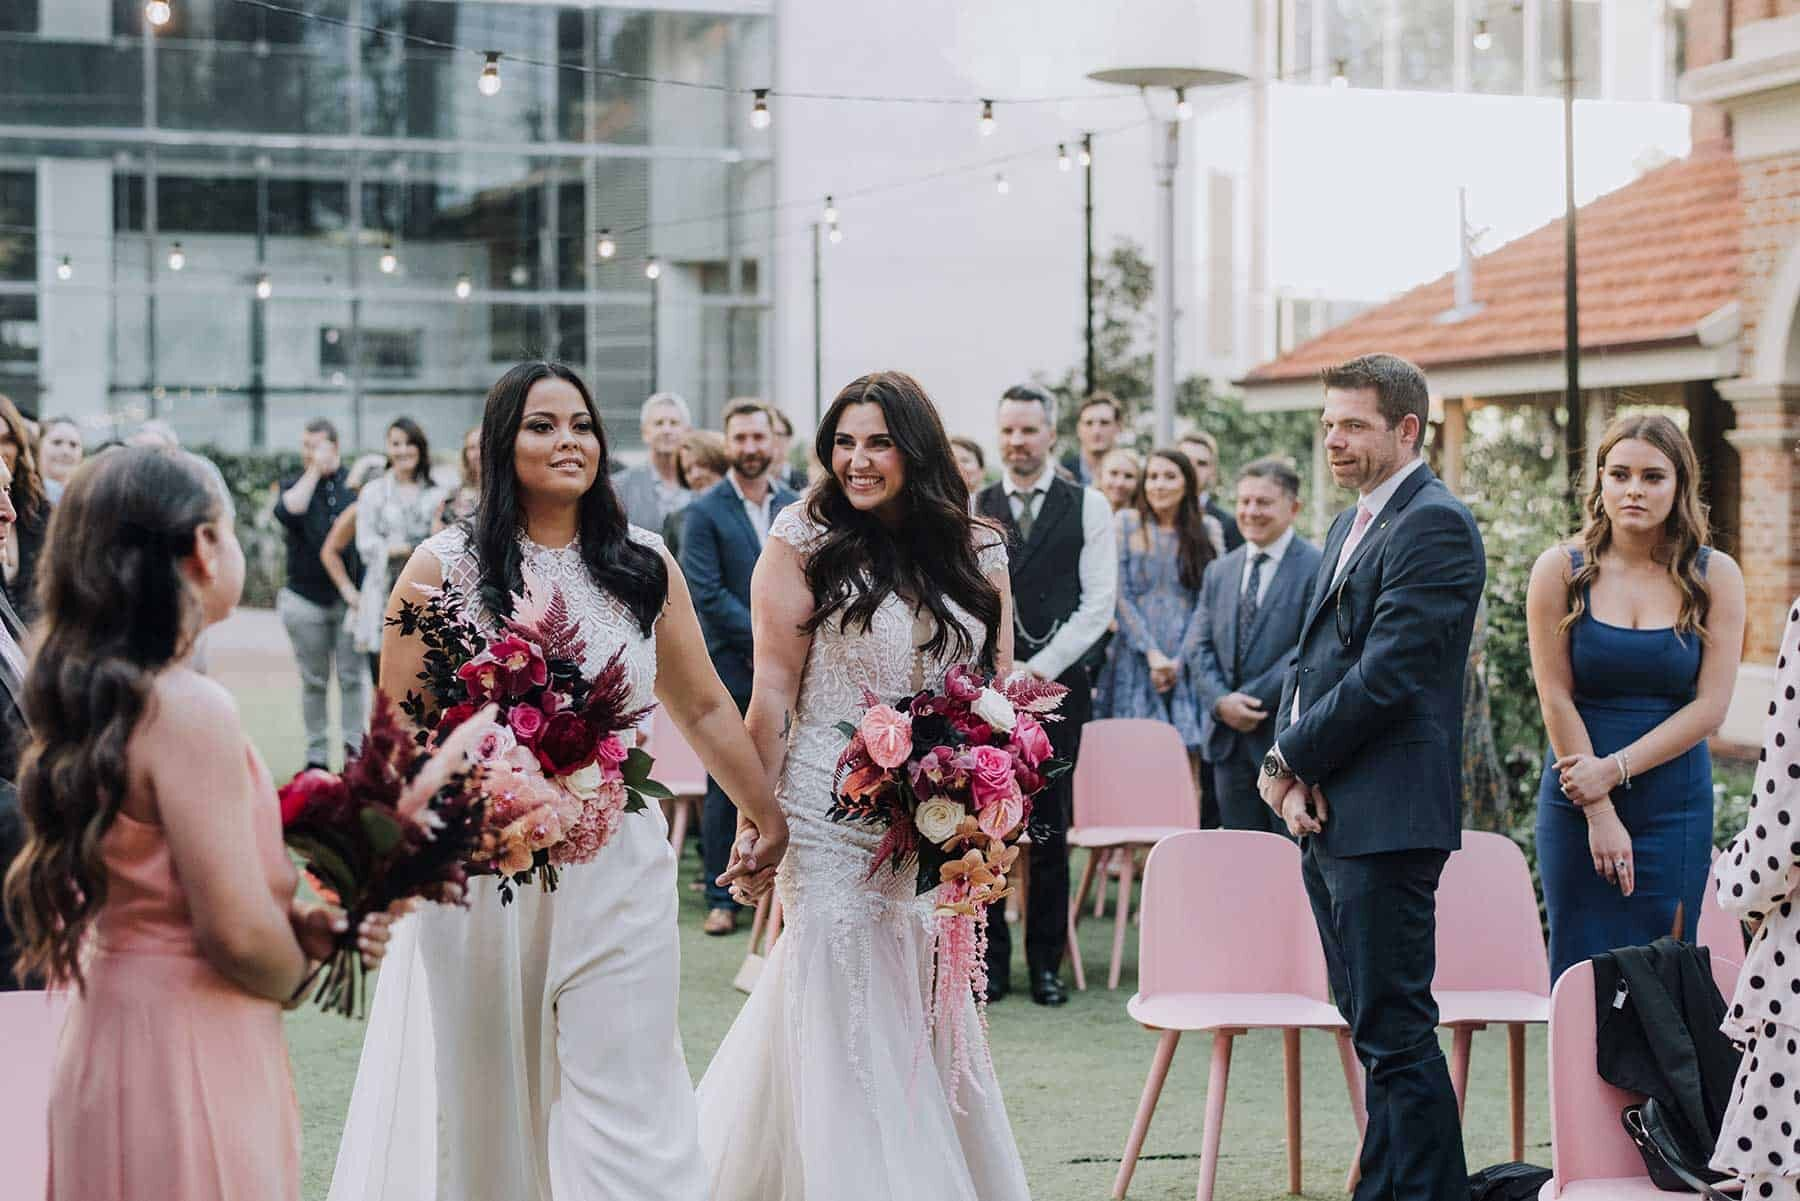 Epic pink wedding at Lamont's Bishops house in Perth WA